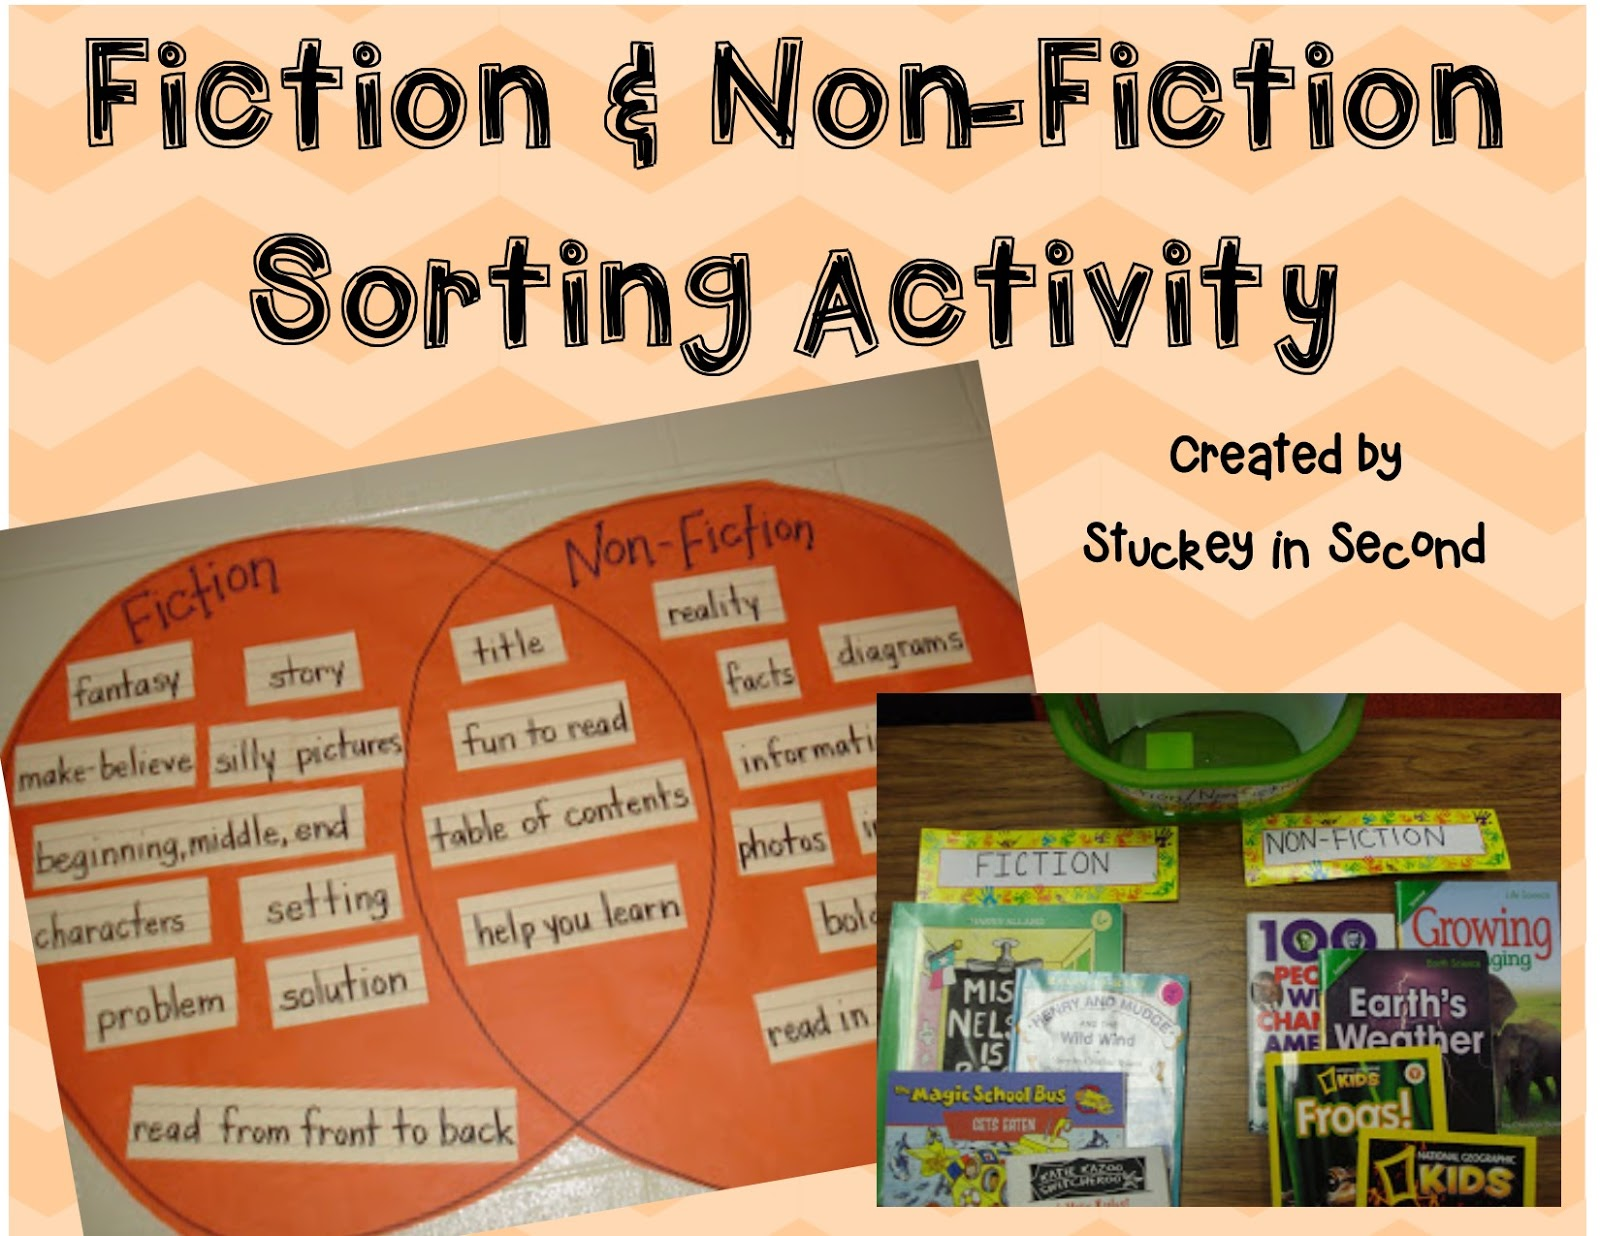 Stuckey In Second Fiction Vs Non Fiction